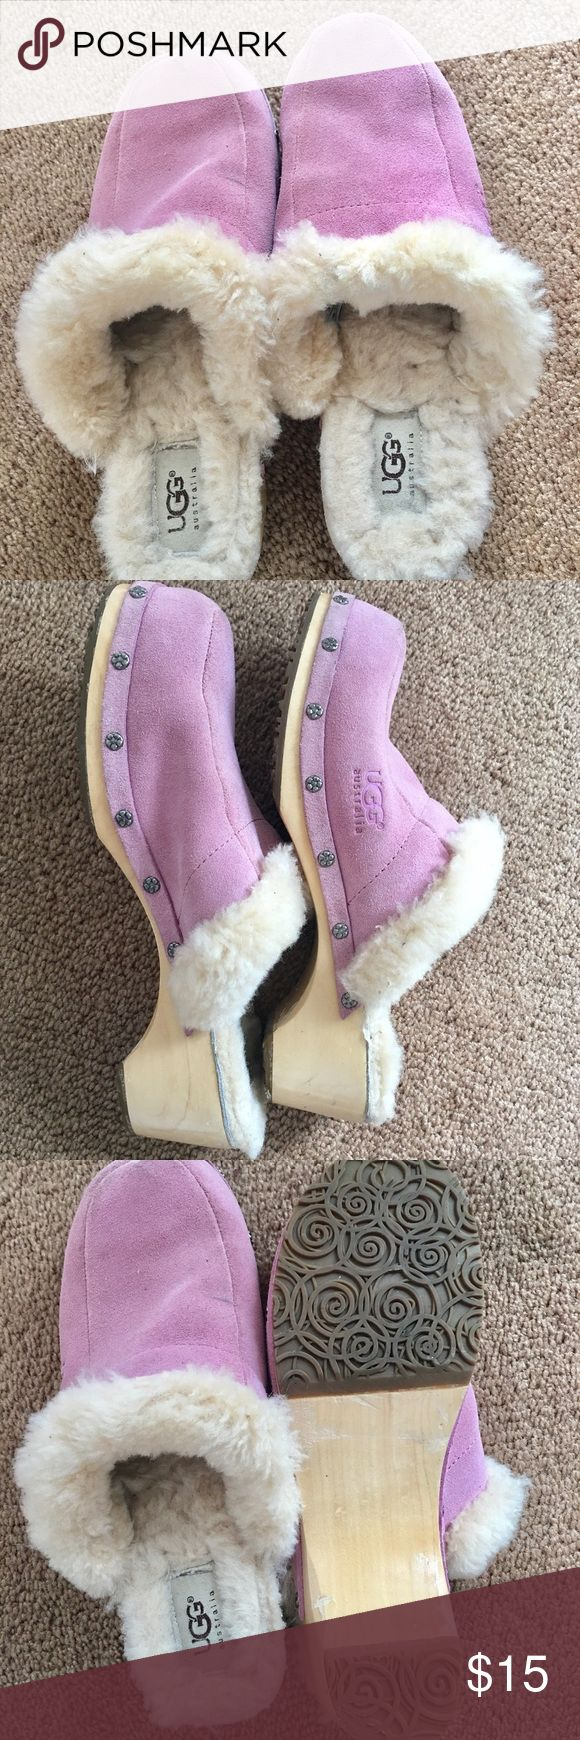 💞💕🌟✨ UGG shoes ✨🌟💕💞 ✨🌟100% Authentic 🌟✨ Australia 🇦🇺 UGG Shoes Slippers